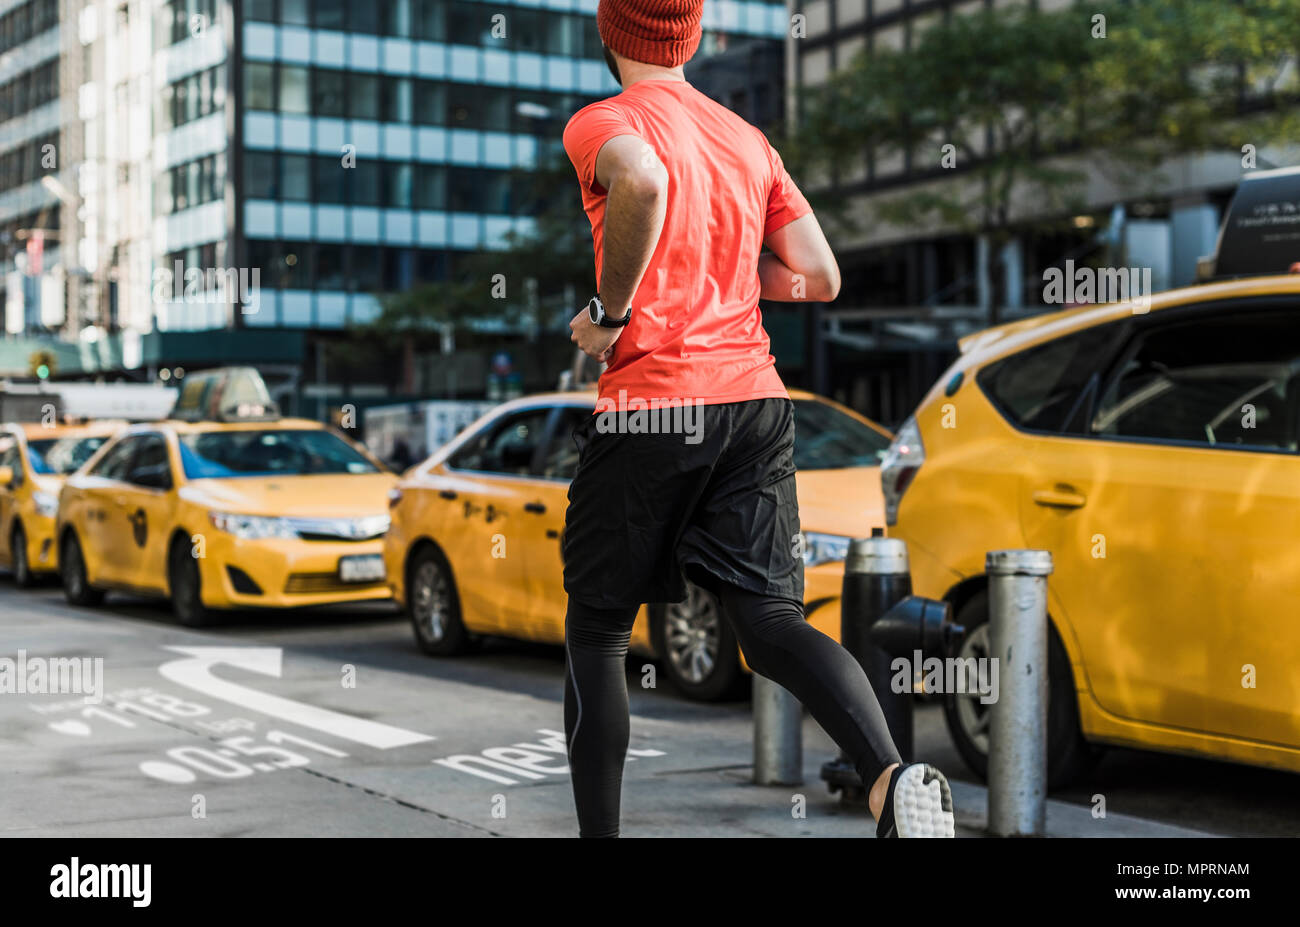 USA, New York City, man running in the city with data on pavement - Stock Image